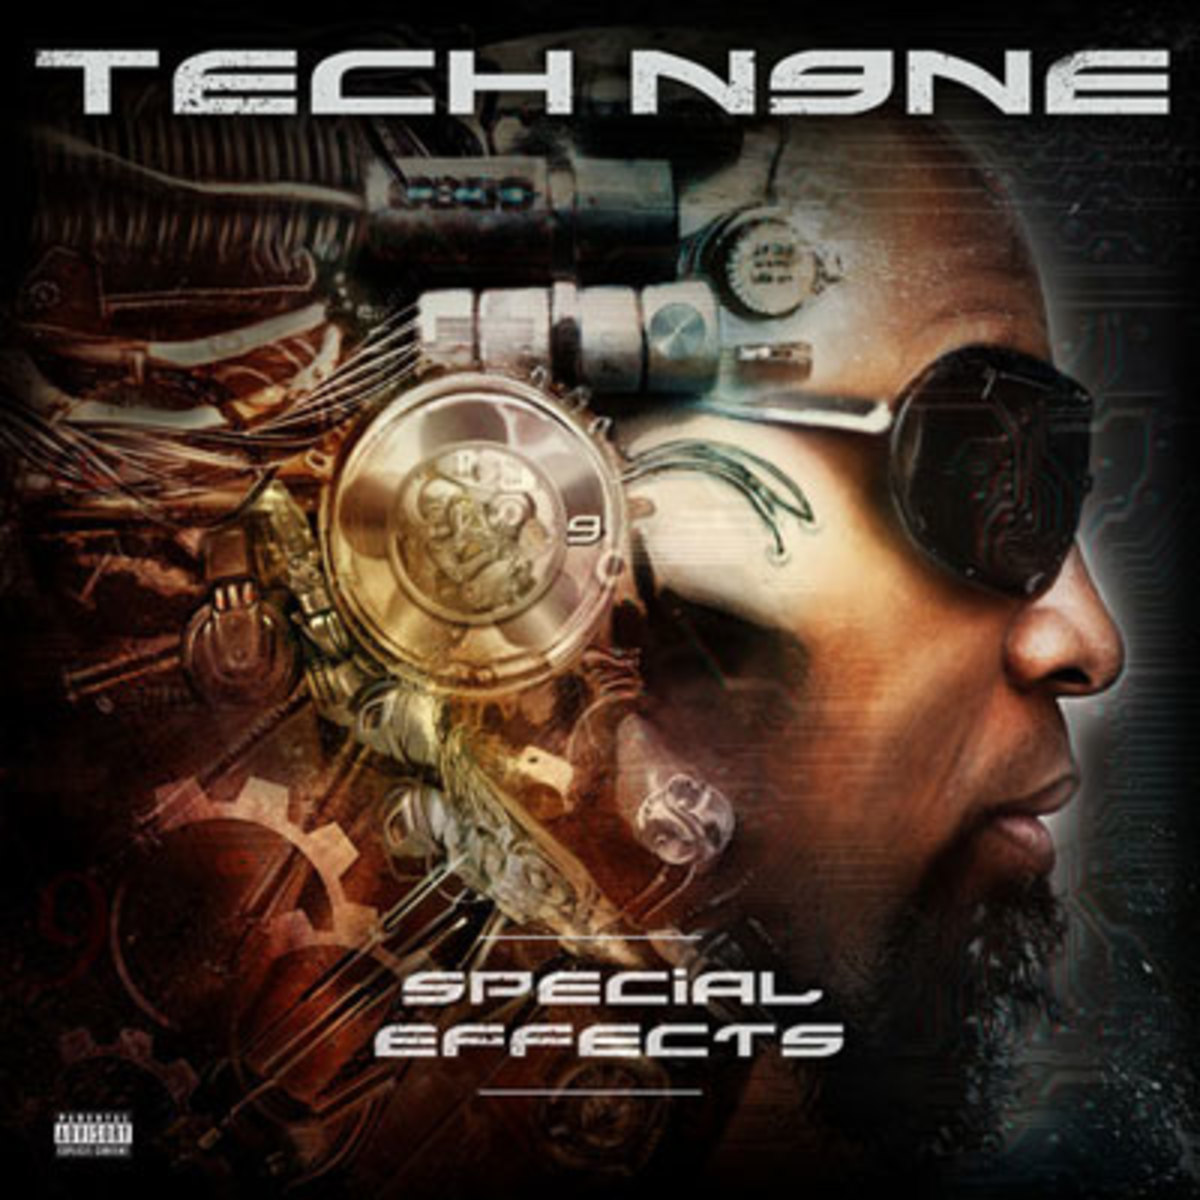 tech-n9ne-special-effects.jpg